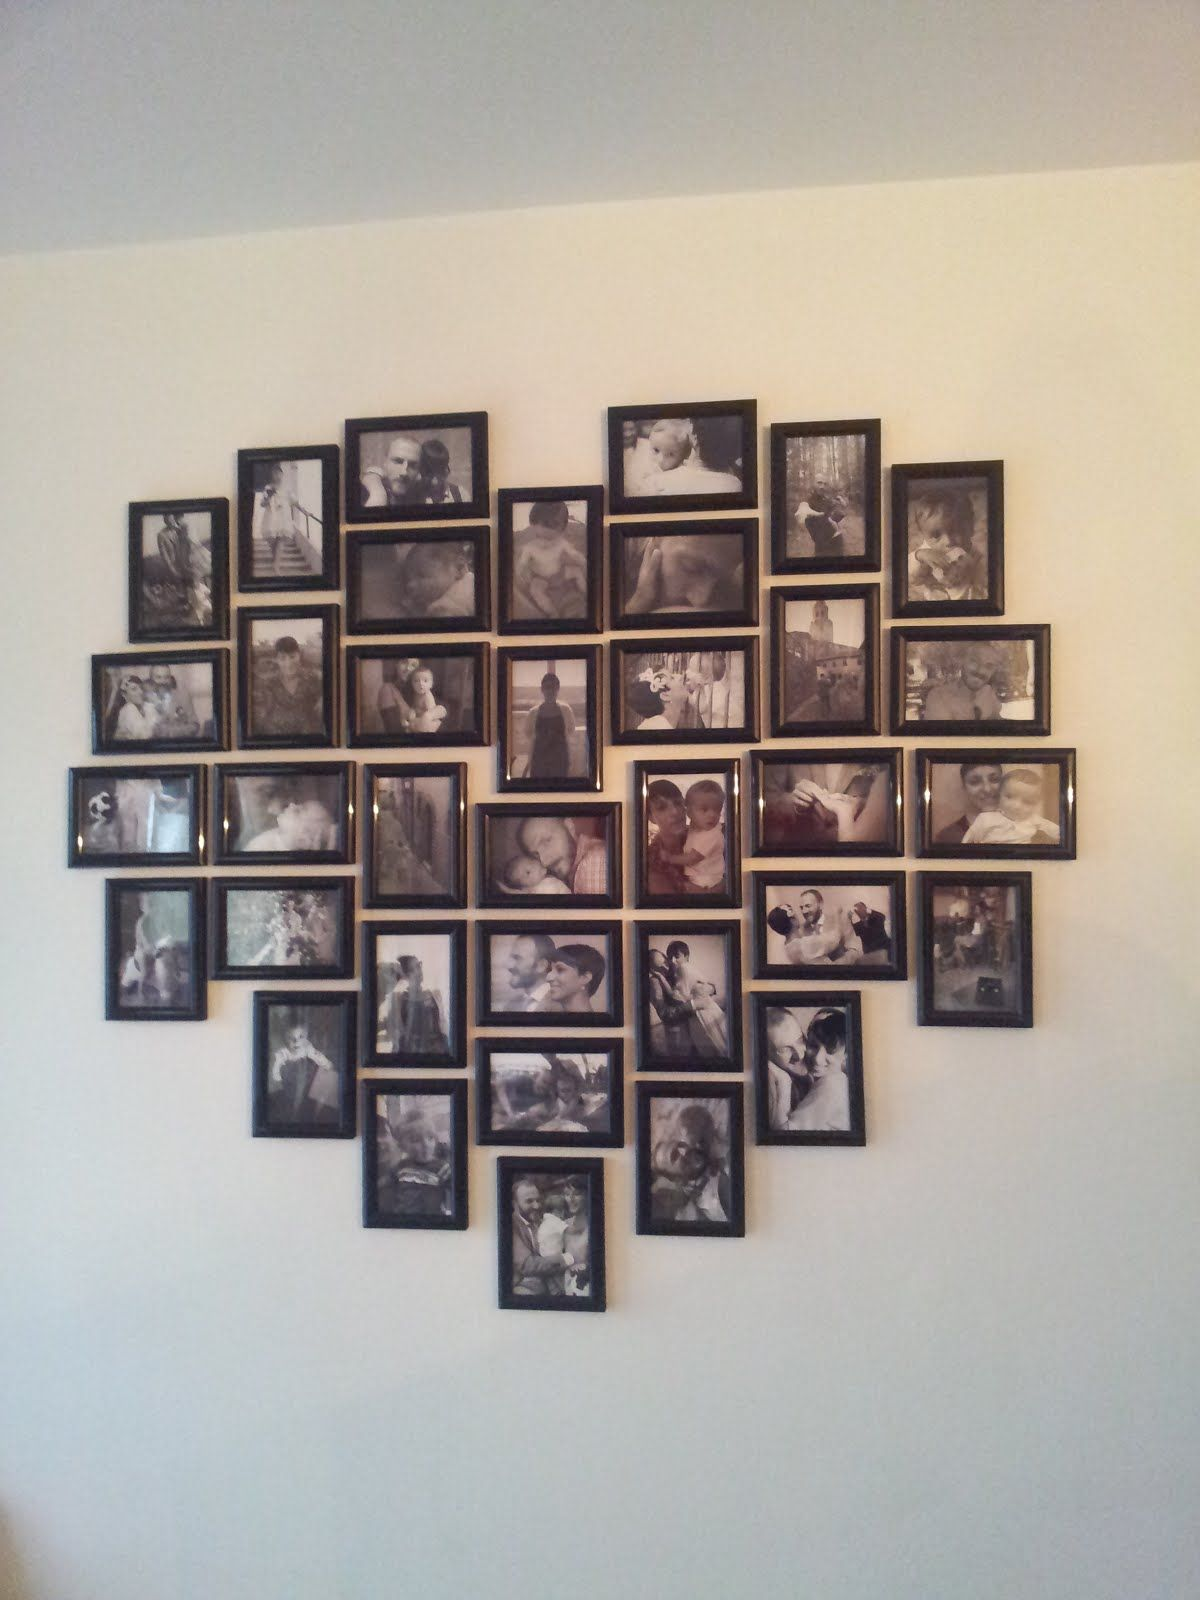 Bedroom Frame Arrangement  With Bs From Our Wedding